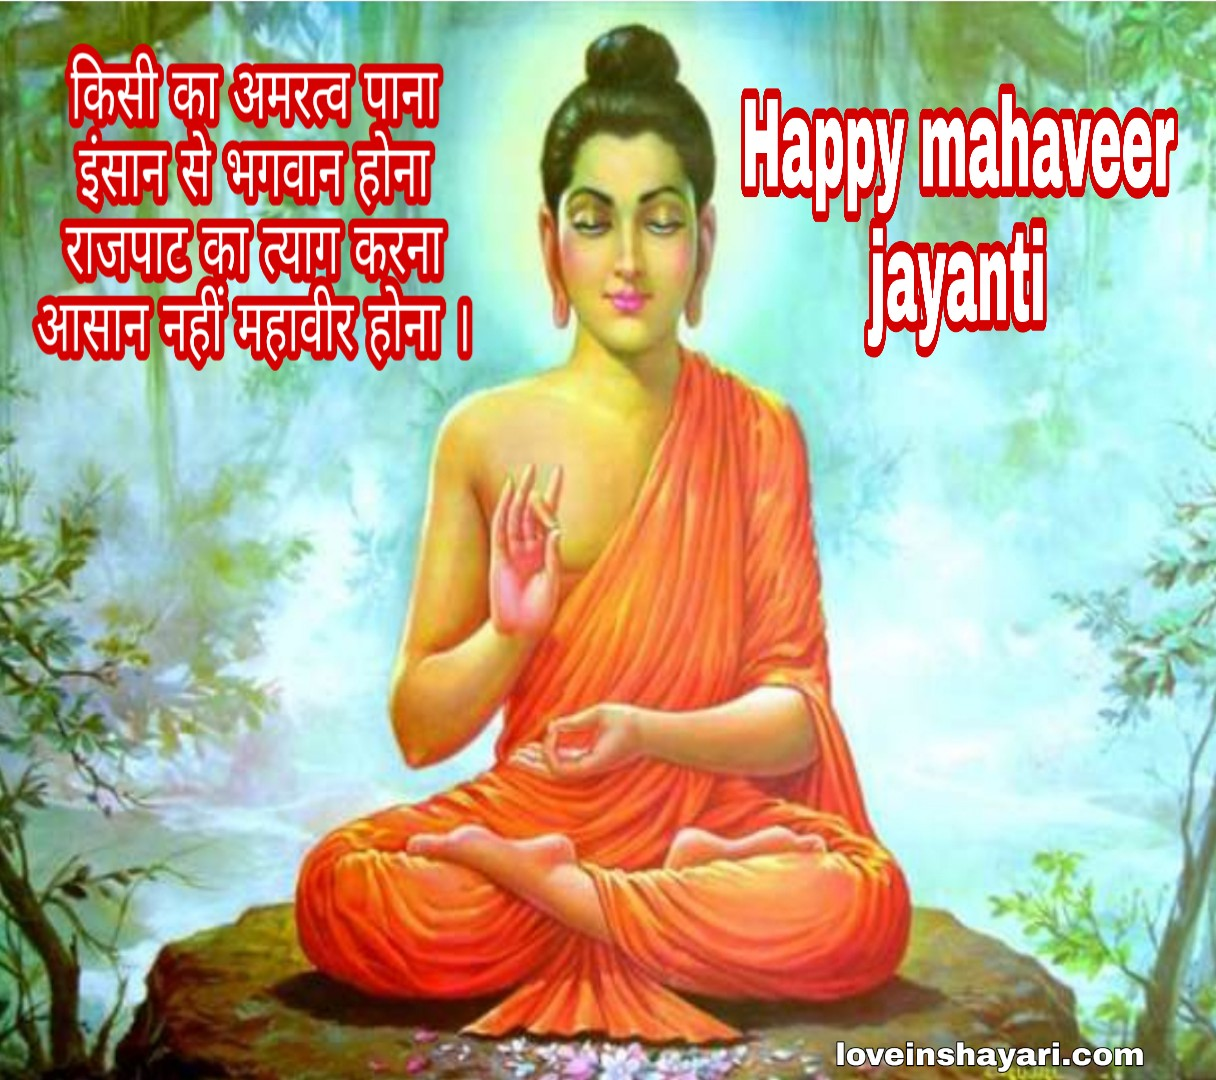 Photo of Mahaveer jayanti status whatsapp status 2020